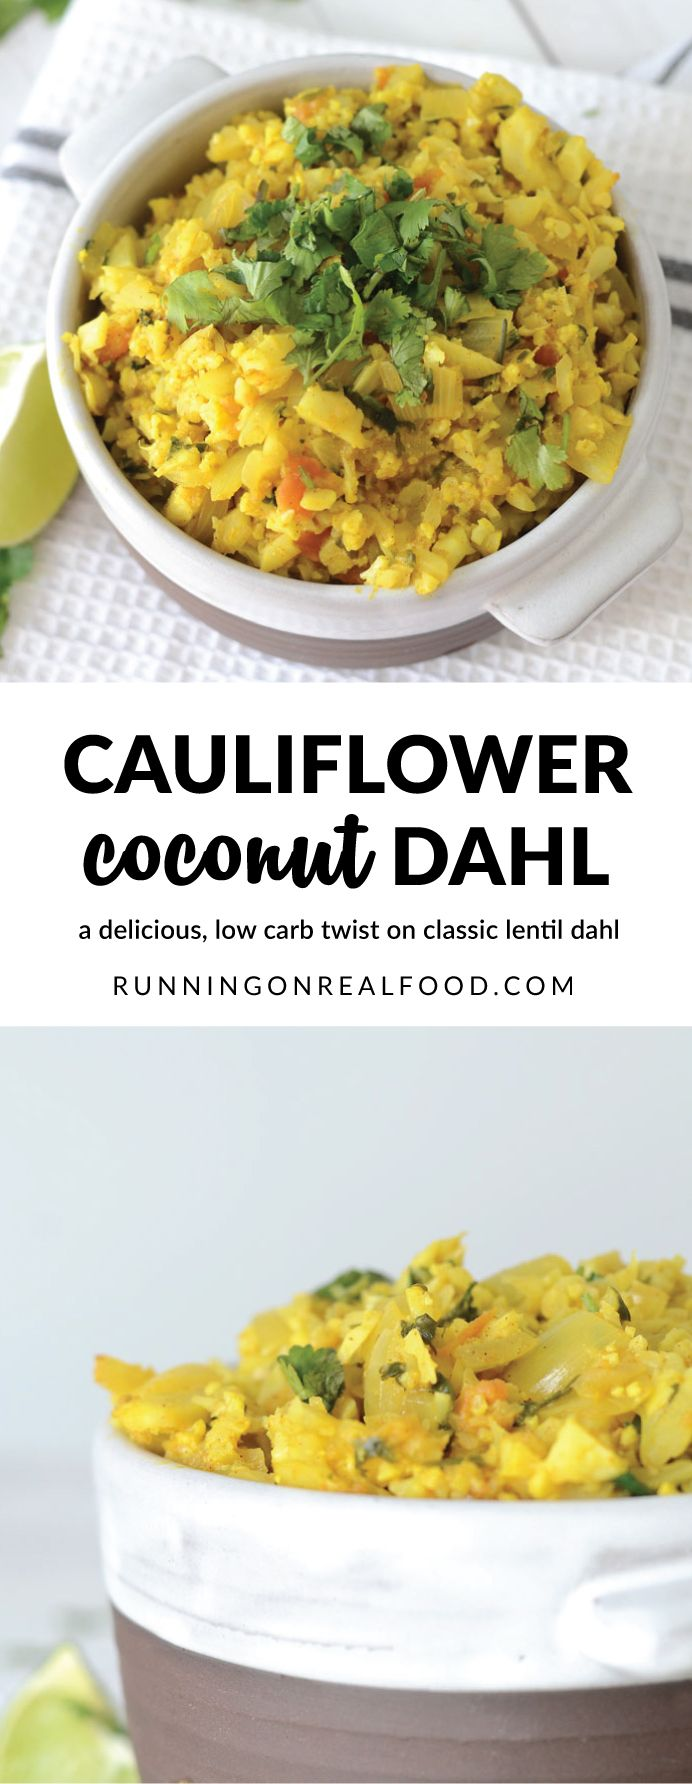 This healthy, vegan cauliflower coconut dahl has all the flavour of lentil dahl but is just 106 calories per serving. Easy to make with simple ingredients, full of flavour + nutrition, ready in less than 30 minutes. (Oil-free, gluten-free.)